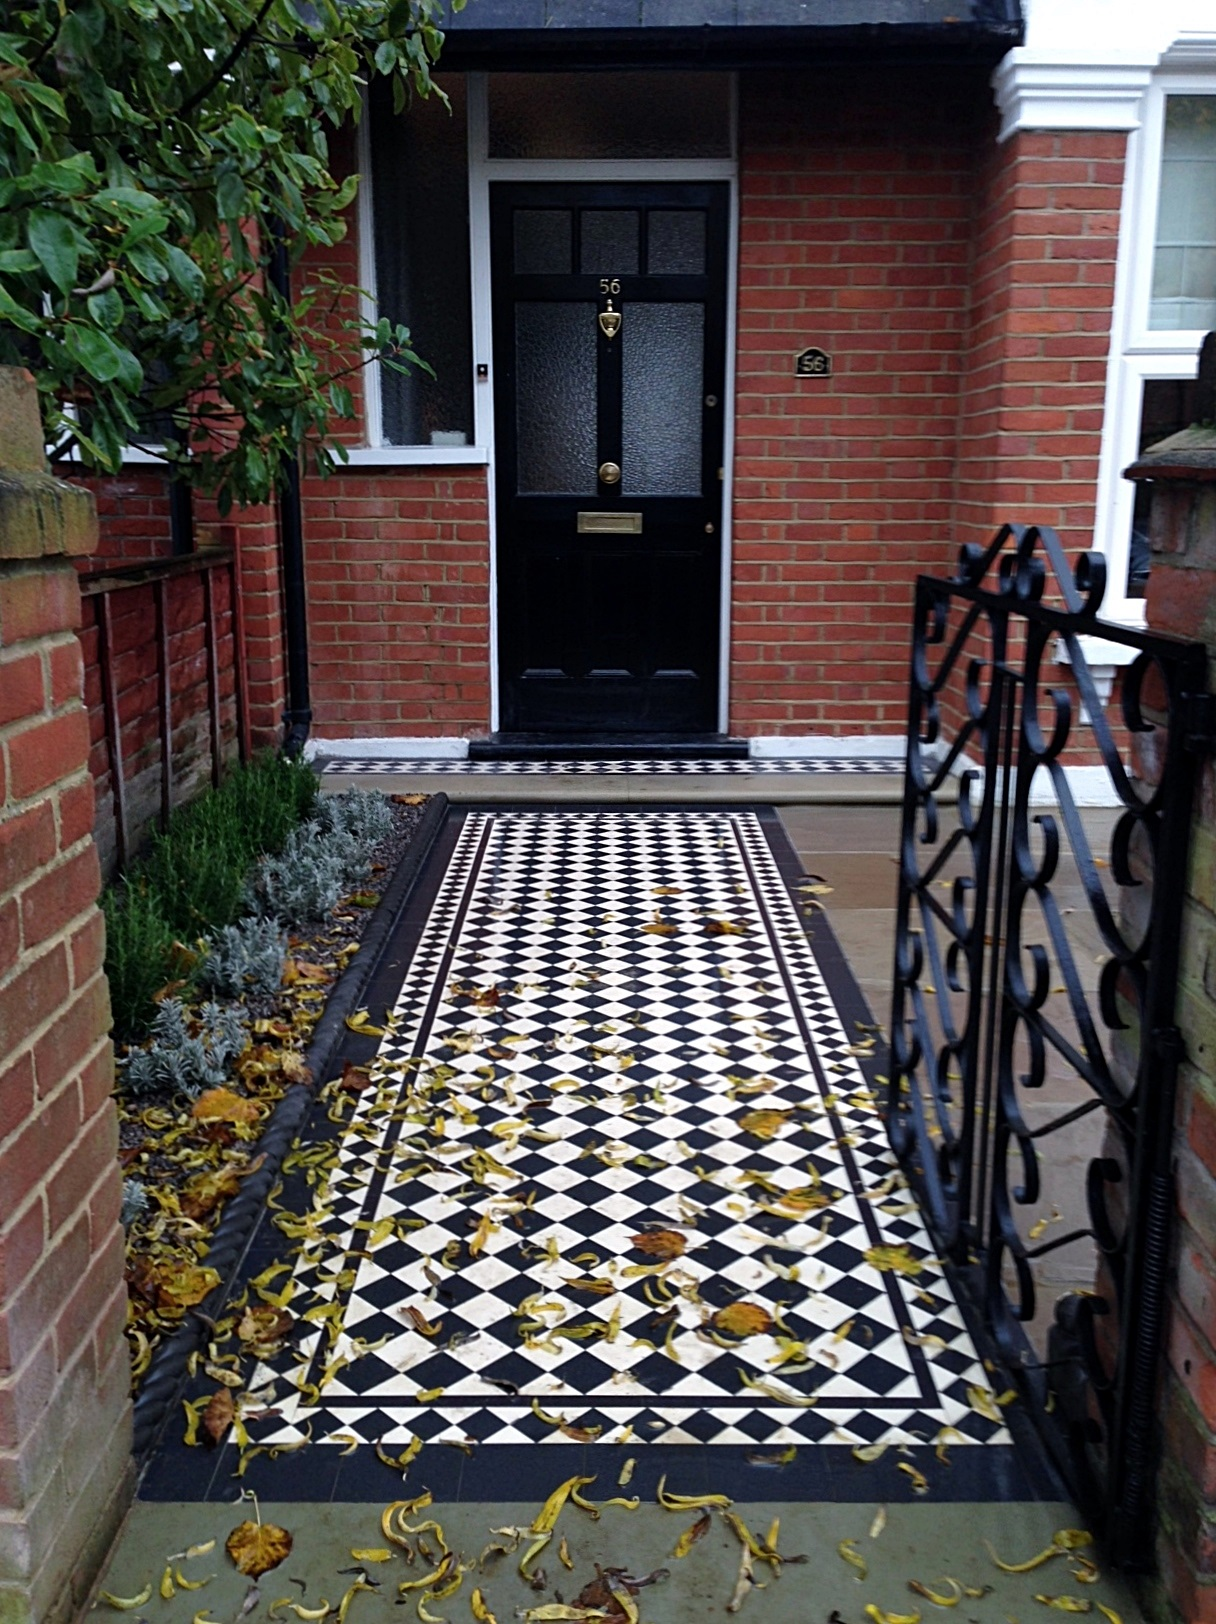 victroian mosaic tile path dulwich crystal palace london (1)